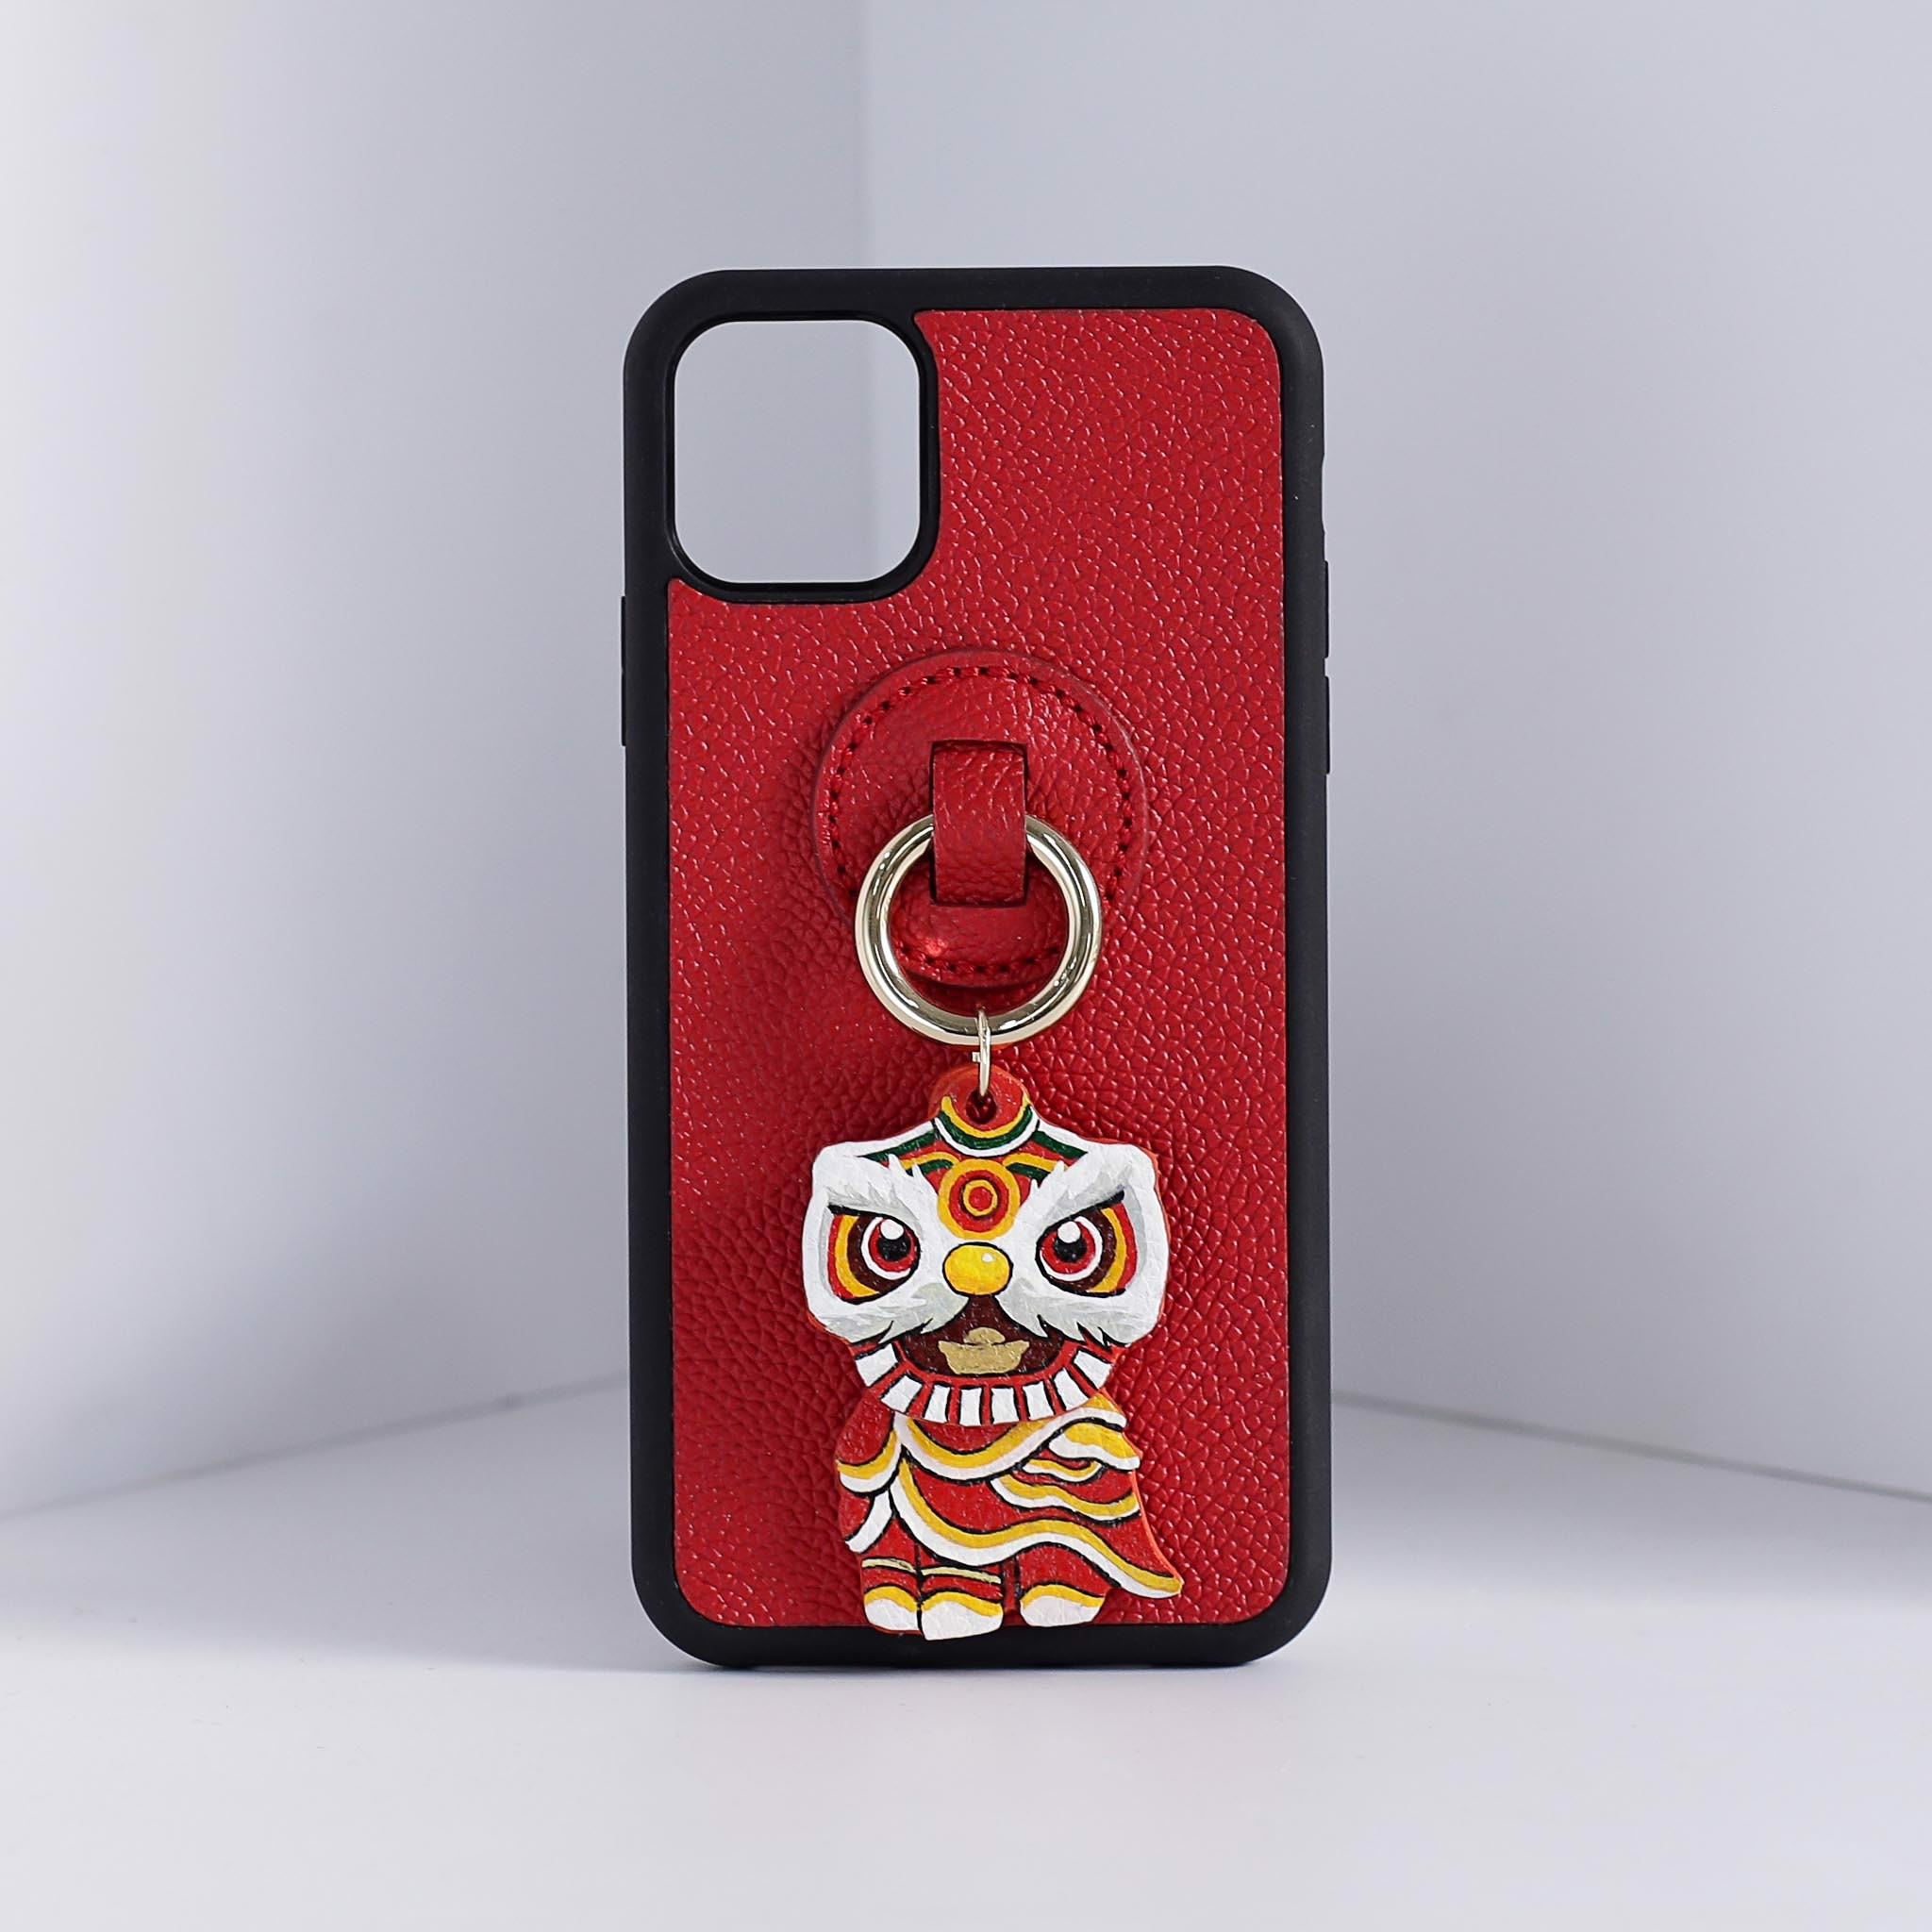 Case iPhone 11 Max Do137-PK Lân-20